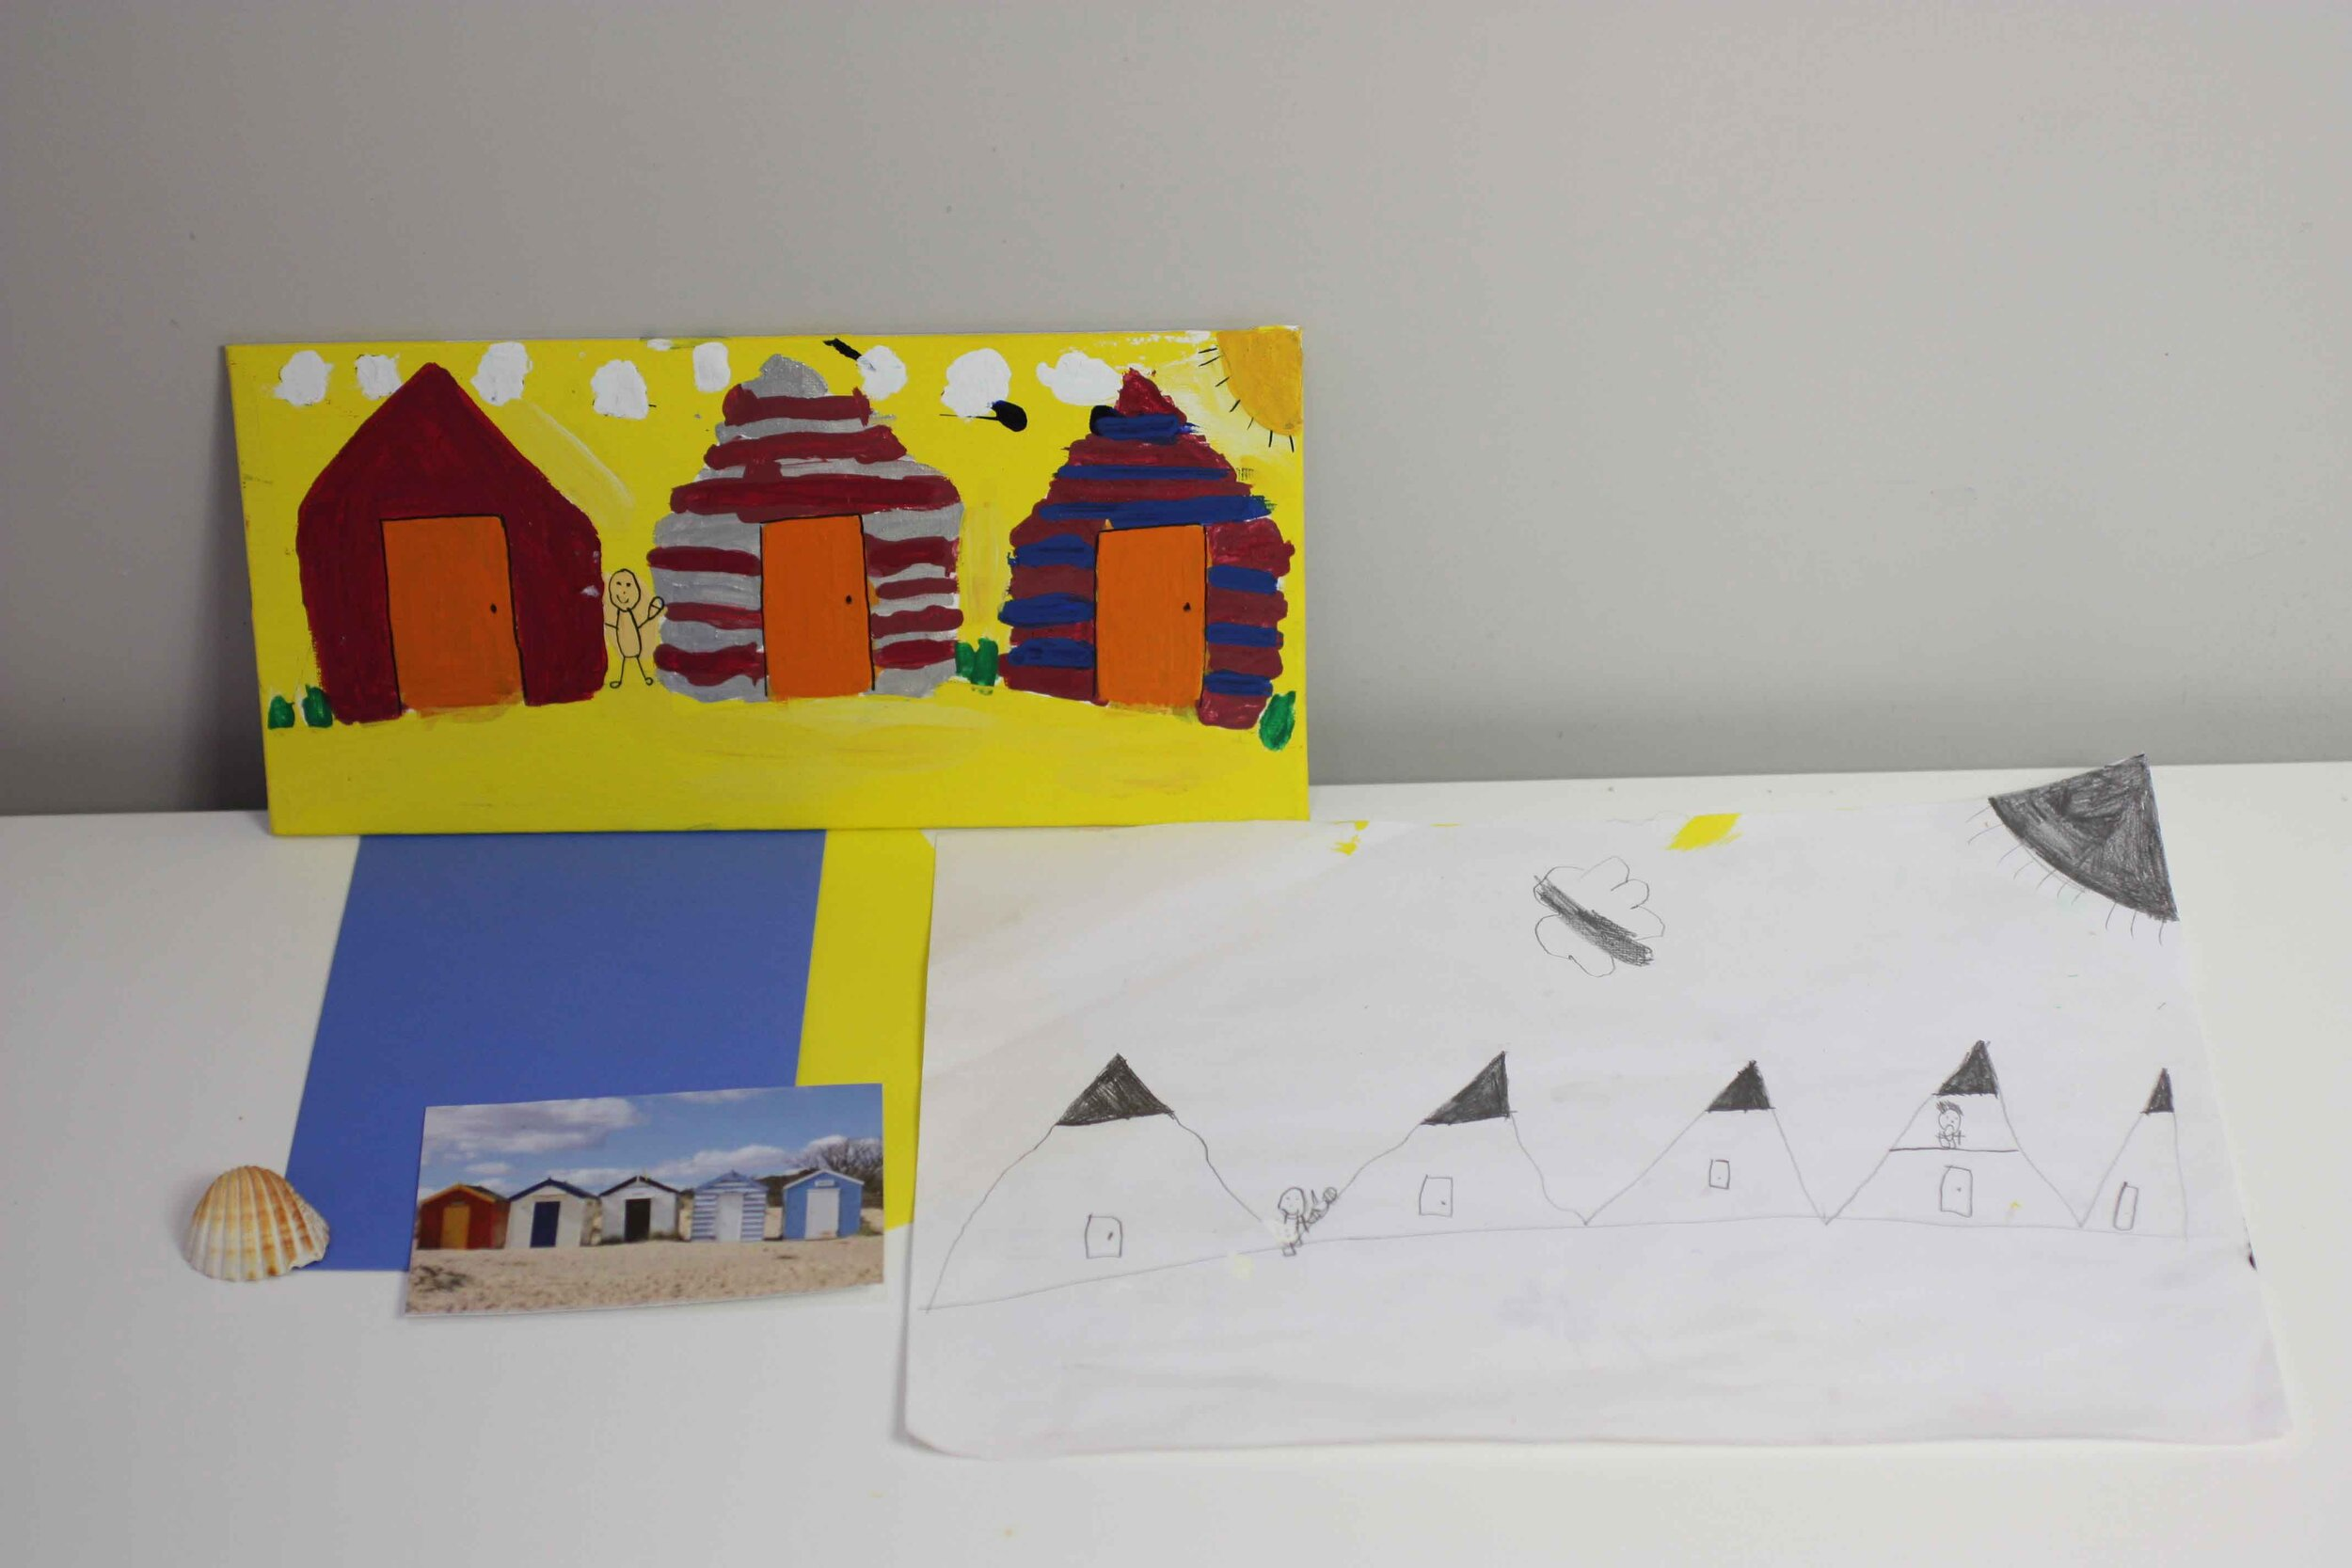 by Joseph, Class: Penguins, Year 2